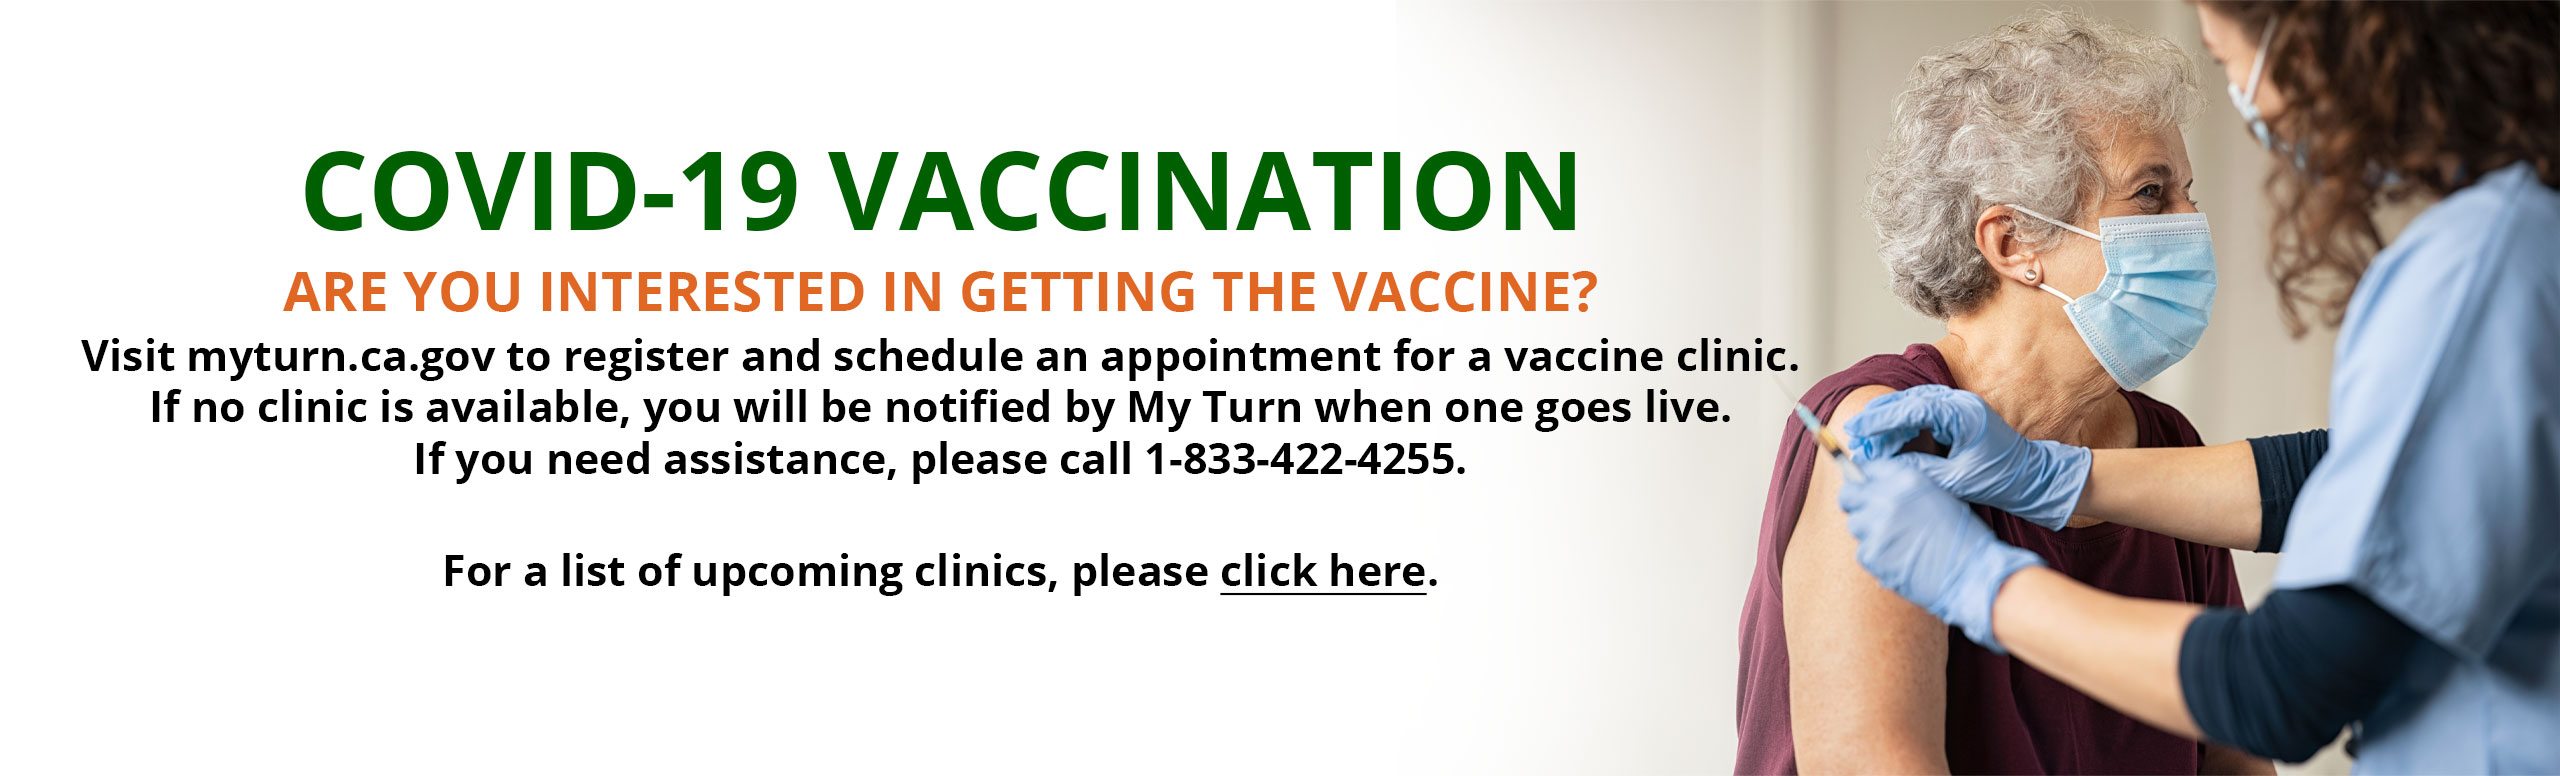 COVID-19 VACCINATION ARE YOU INTERESTED IN GETTING THE VACCINE?  Visit myturn.ca.gov to register and schedule an appointment for a vaccine clinic. If no clinic is available, you will be notified by My Turn when one goes live. If you need assistance, please call 1-833-422-4255.   October Clinics Thursdays at the Community Health Center (5300 49 N, Mariposa) from 9:00 am - 12:00 pm and 2:30 - 4:30 pm for the Pfizer, Moderna, and Johnson & Johnson vaccines.